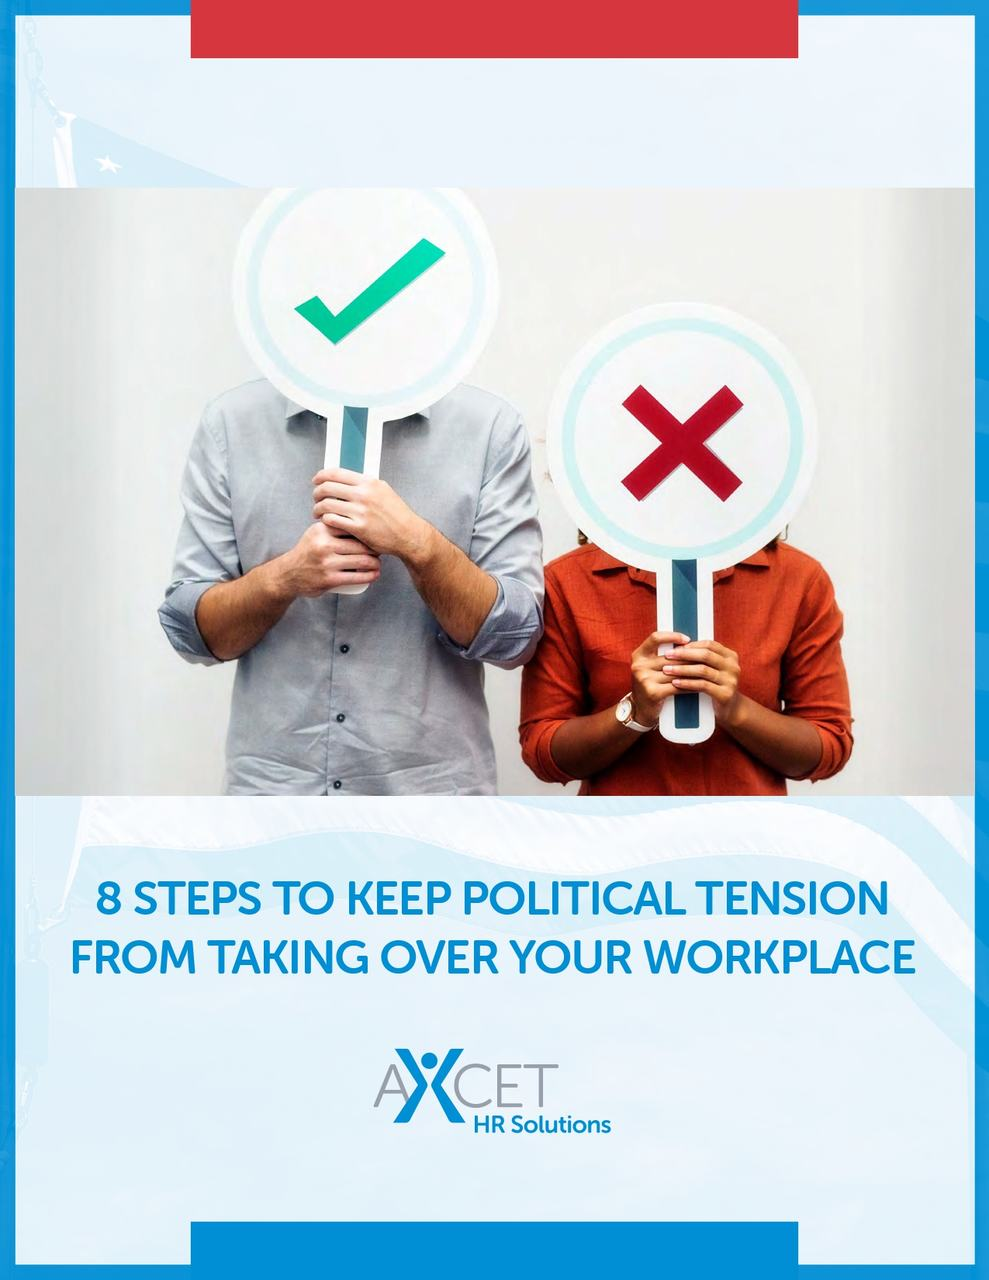 8 Steps to Keep Poltical Tension from Taking Over Your Workplace